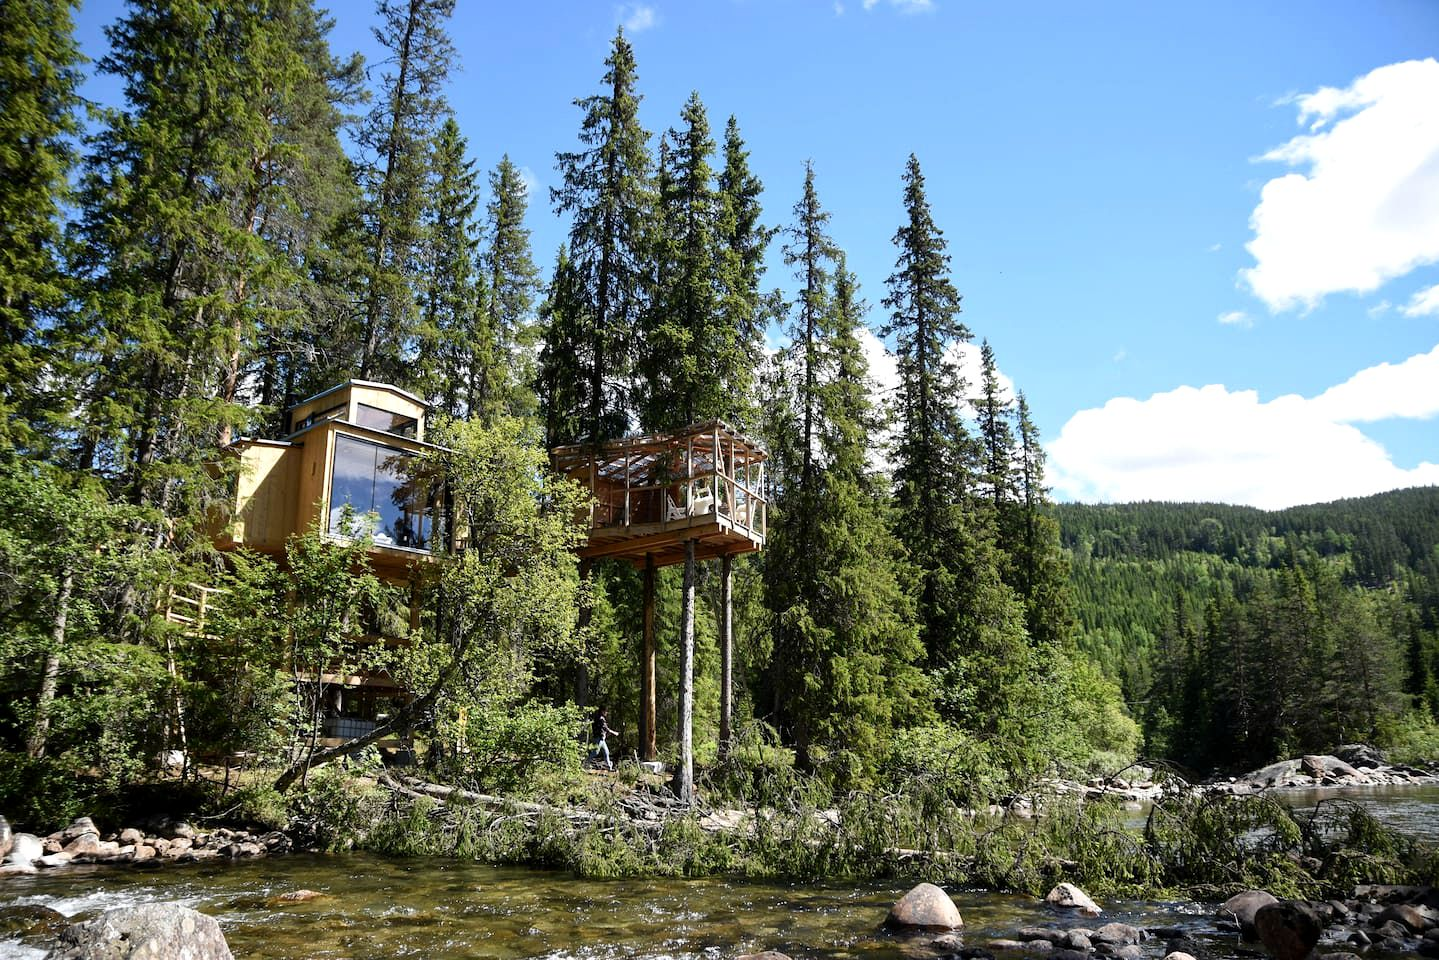 Tree Houses (Austbygd, Eastern Region, Norway)